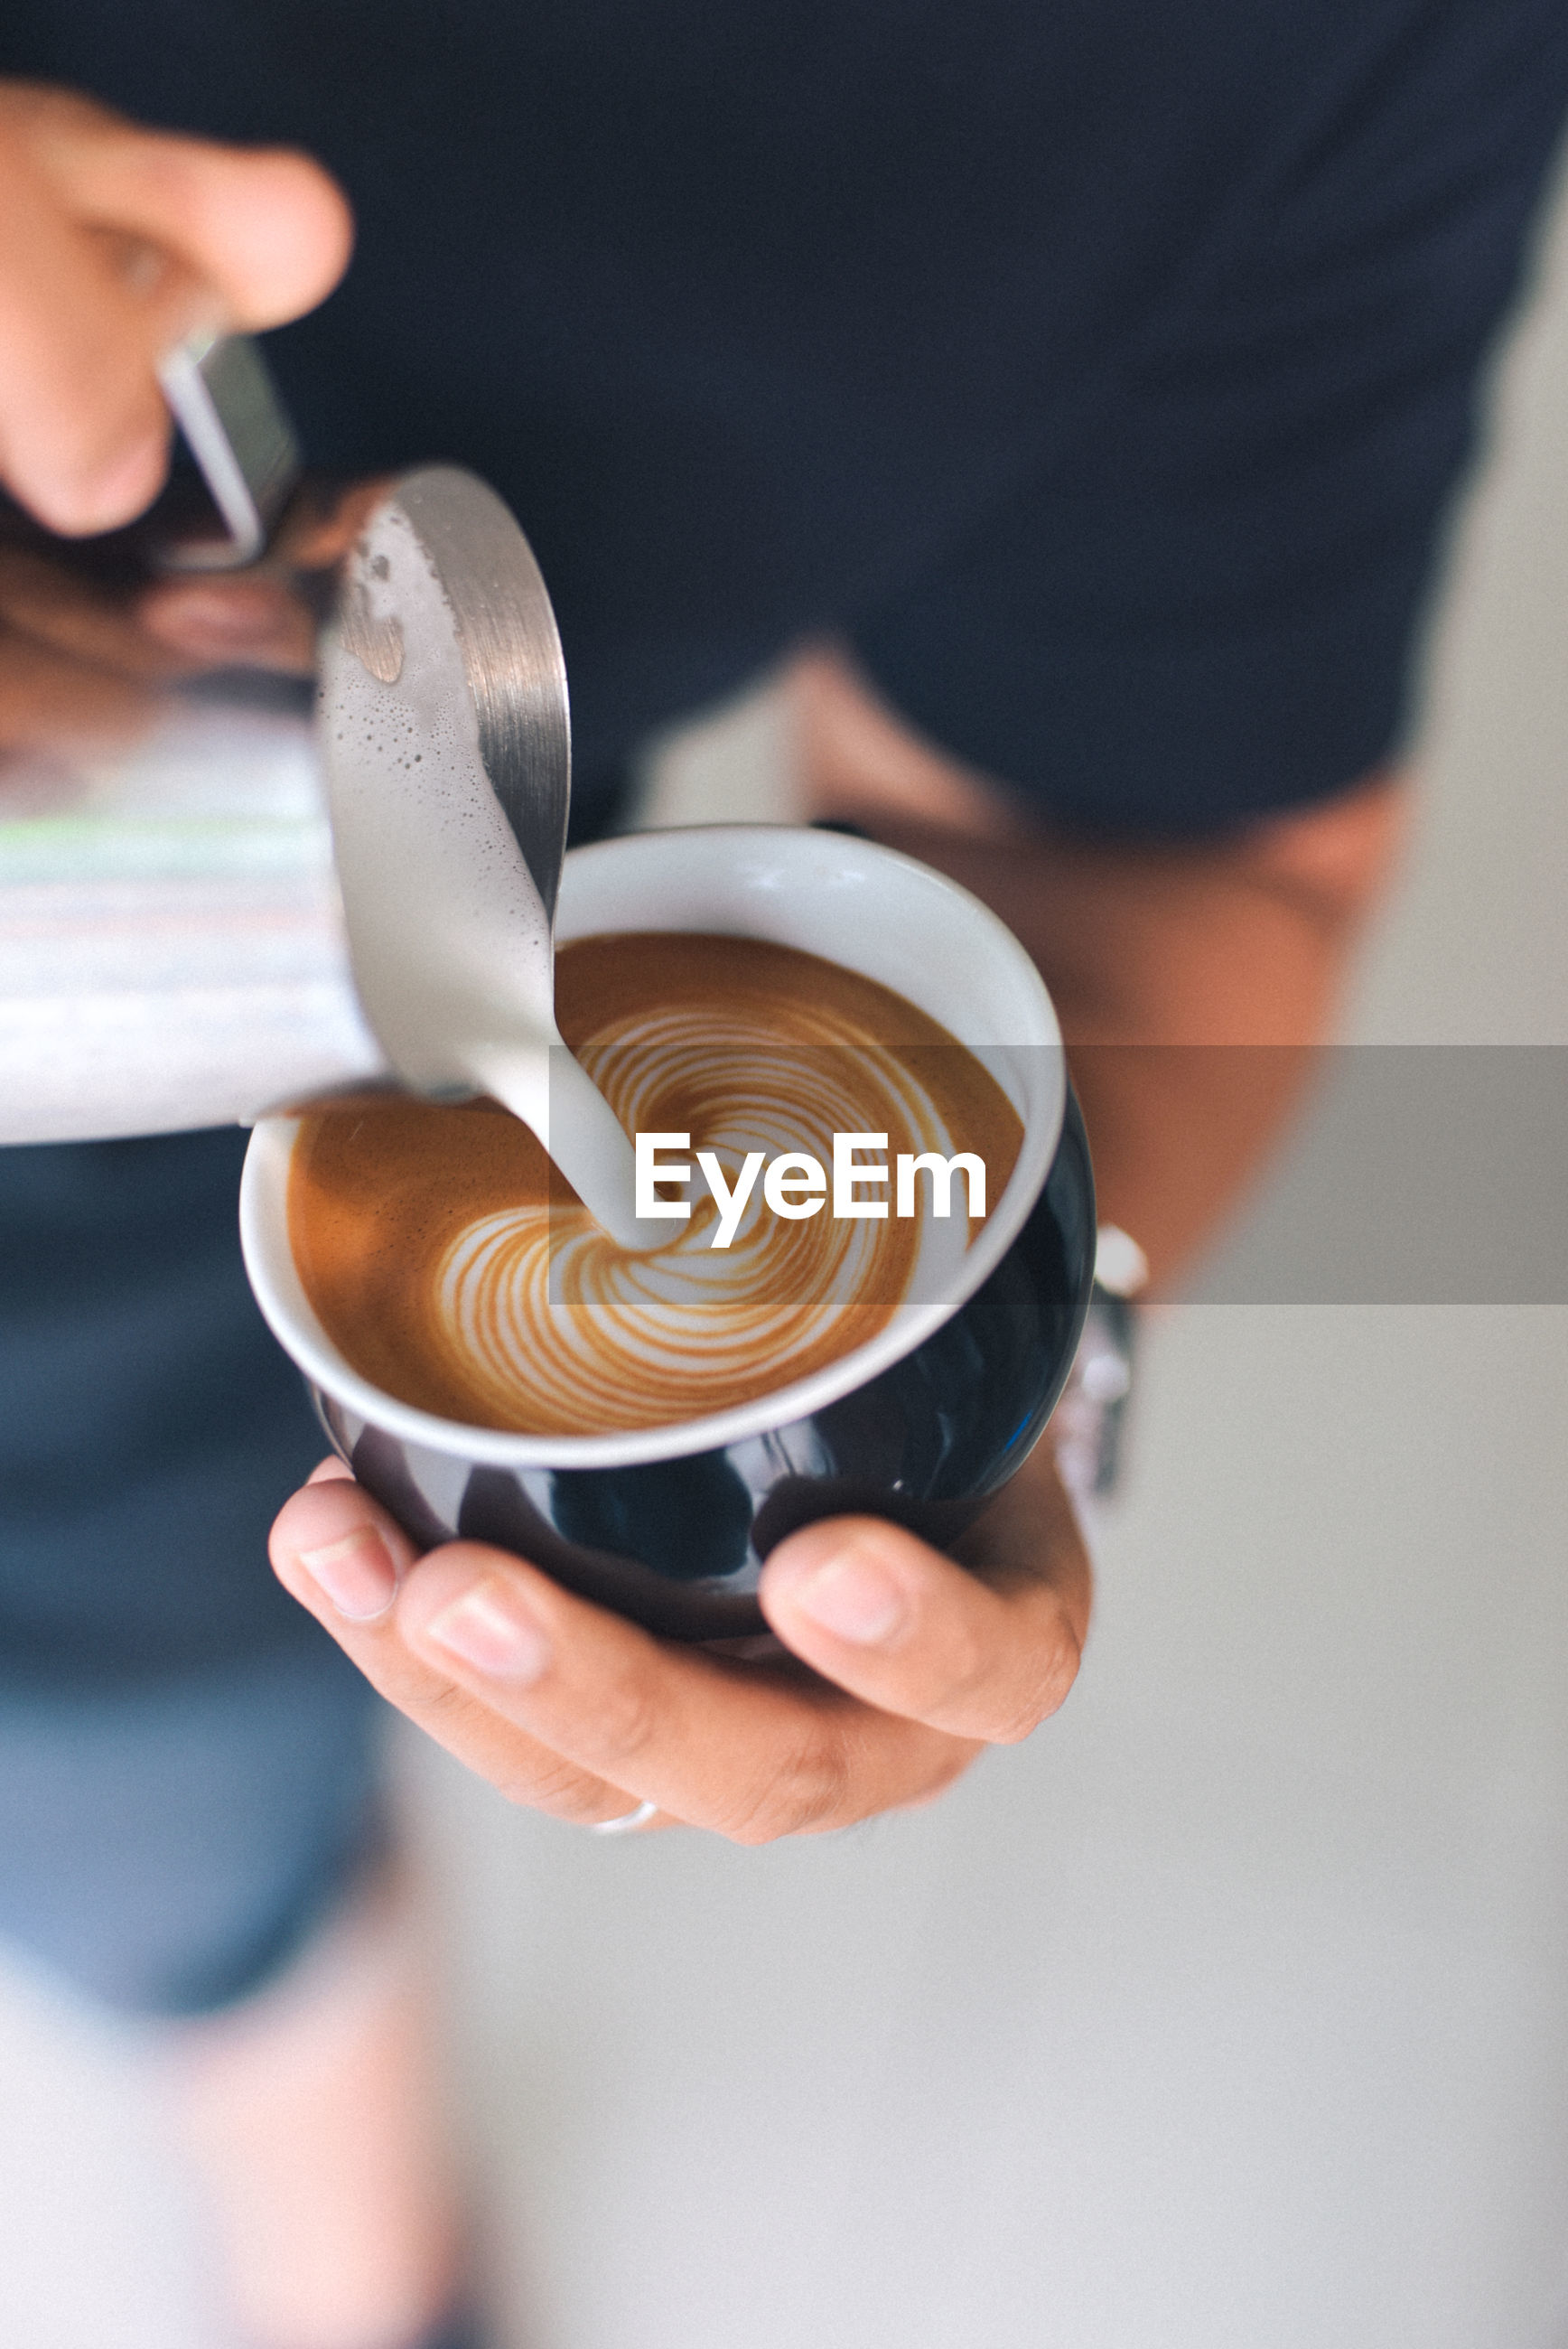 Midsection of man preparing coffee in cafe